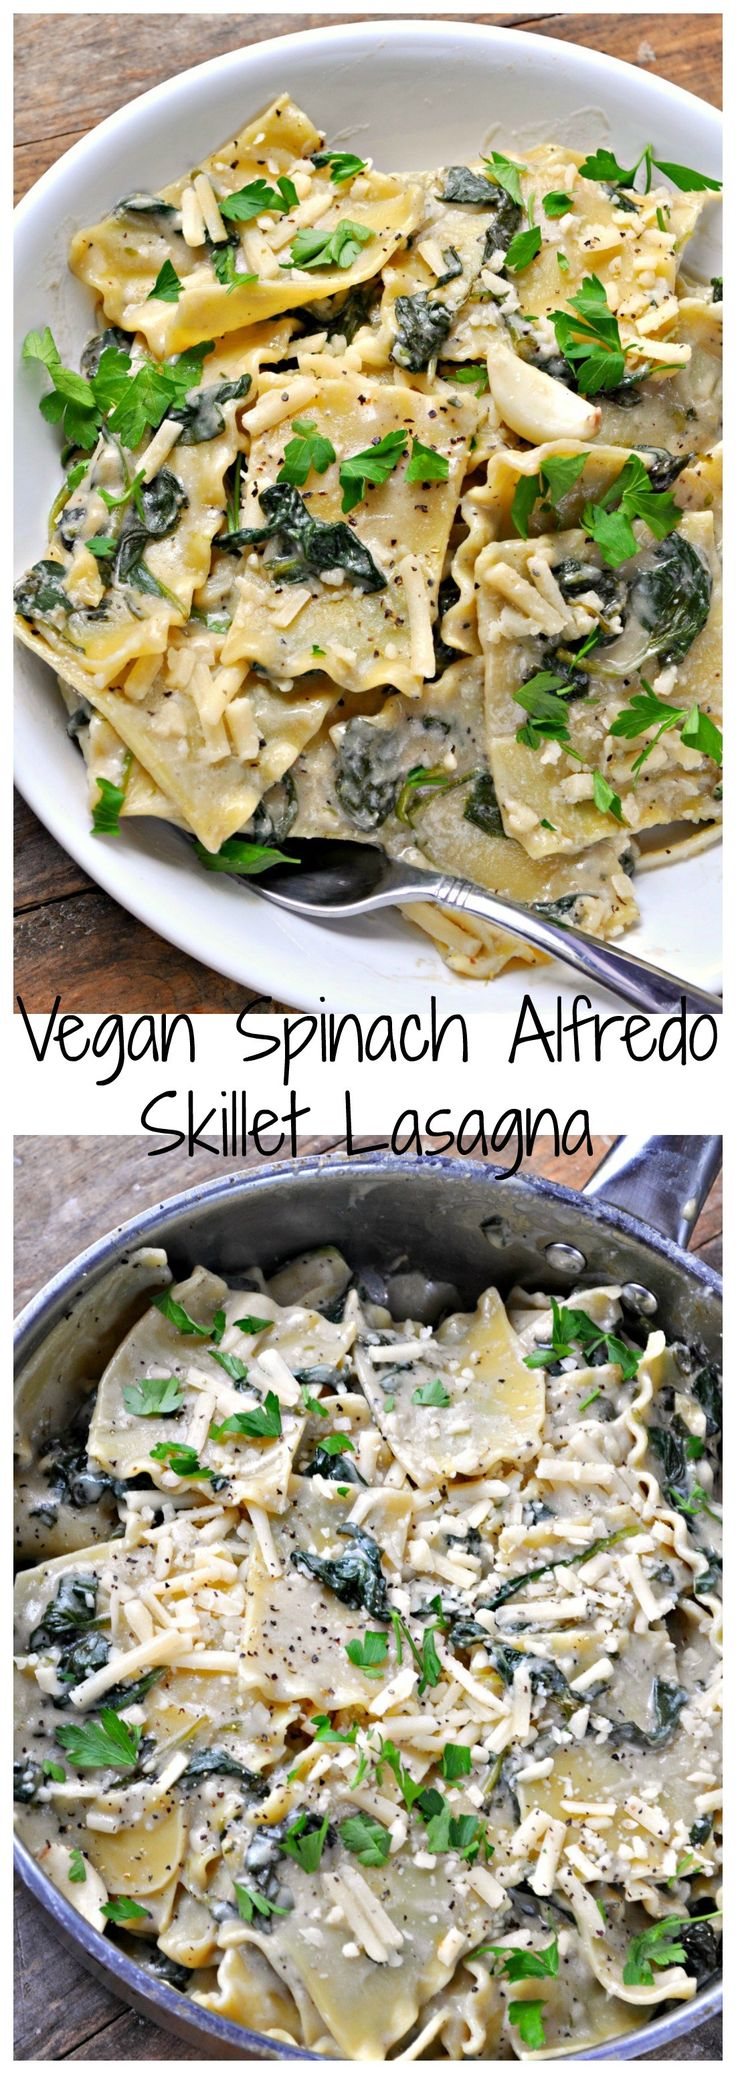 Super creamy, super easy alfredo sauce. Tossed with garlicky spinach and lasagna sheets. Cooked in a skillet and topped with vegan cheese. All melted together!